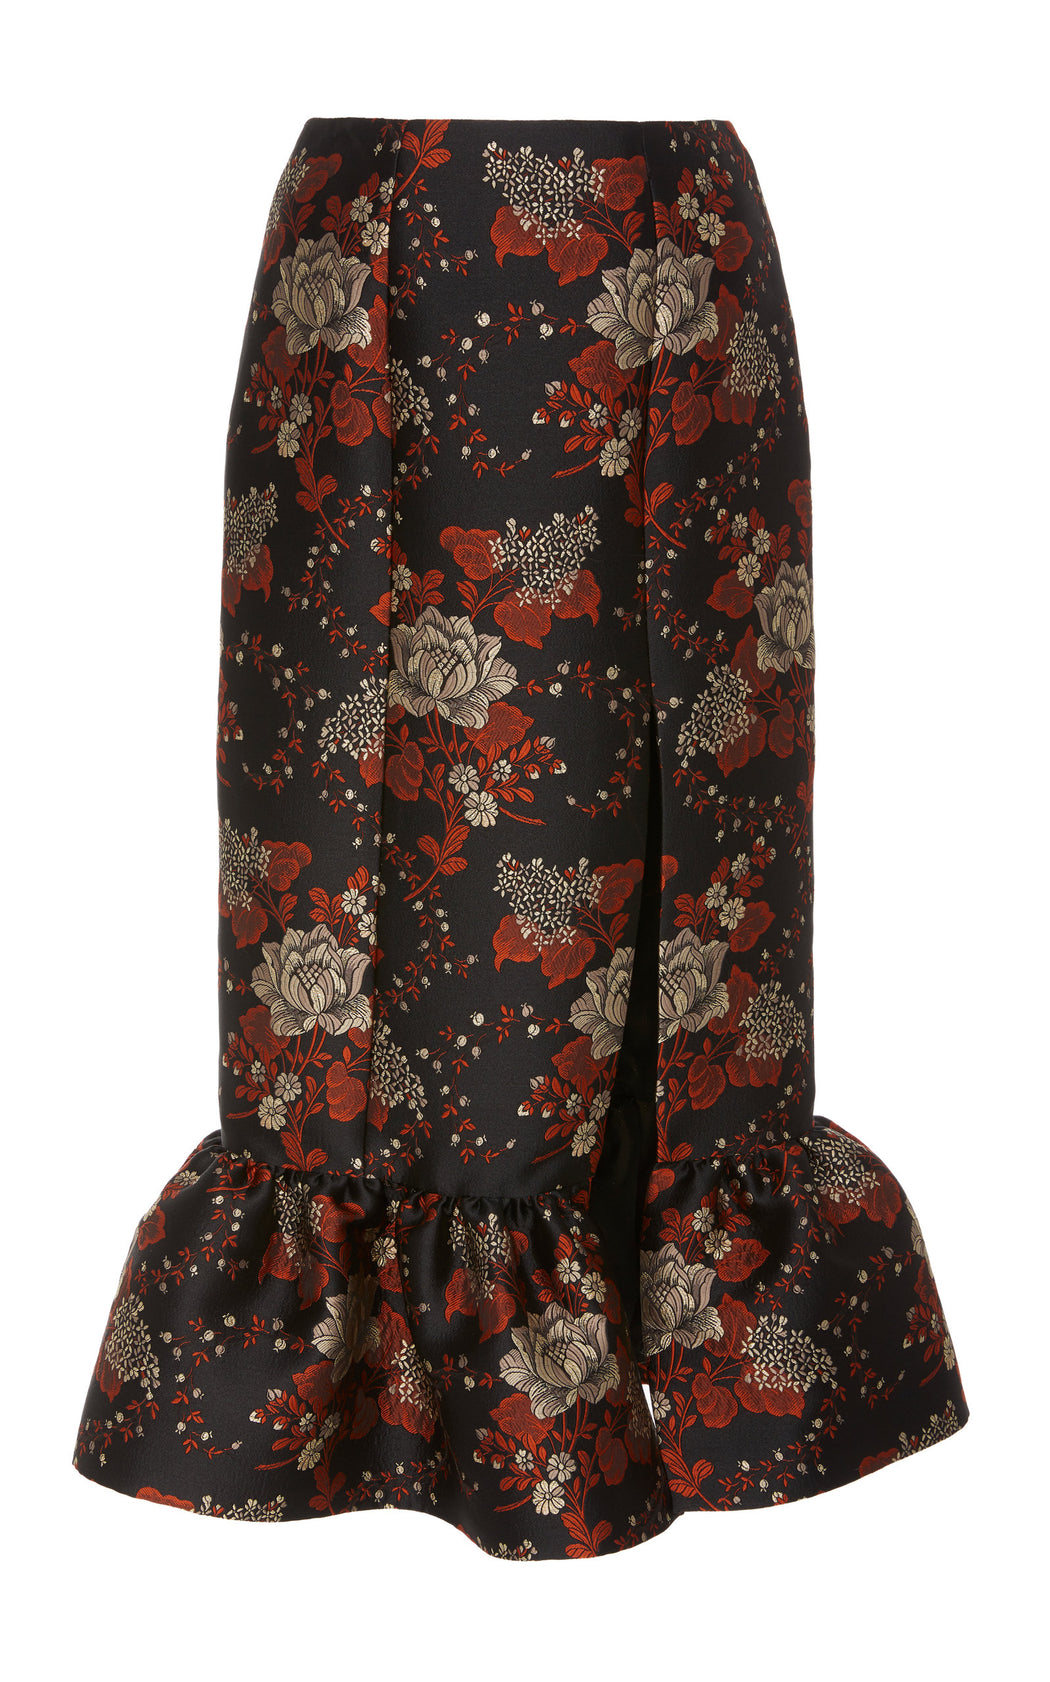 Let's Groove Floral Brocade Skirt